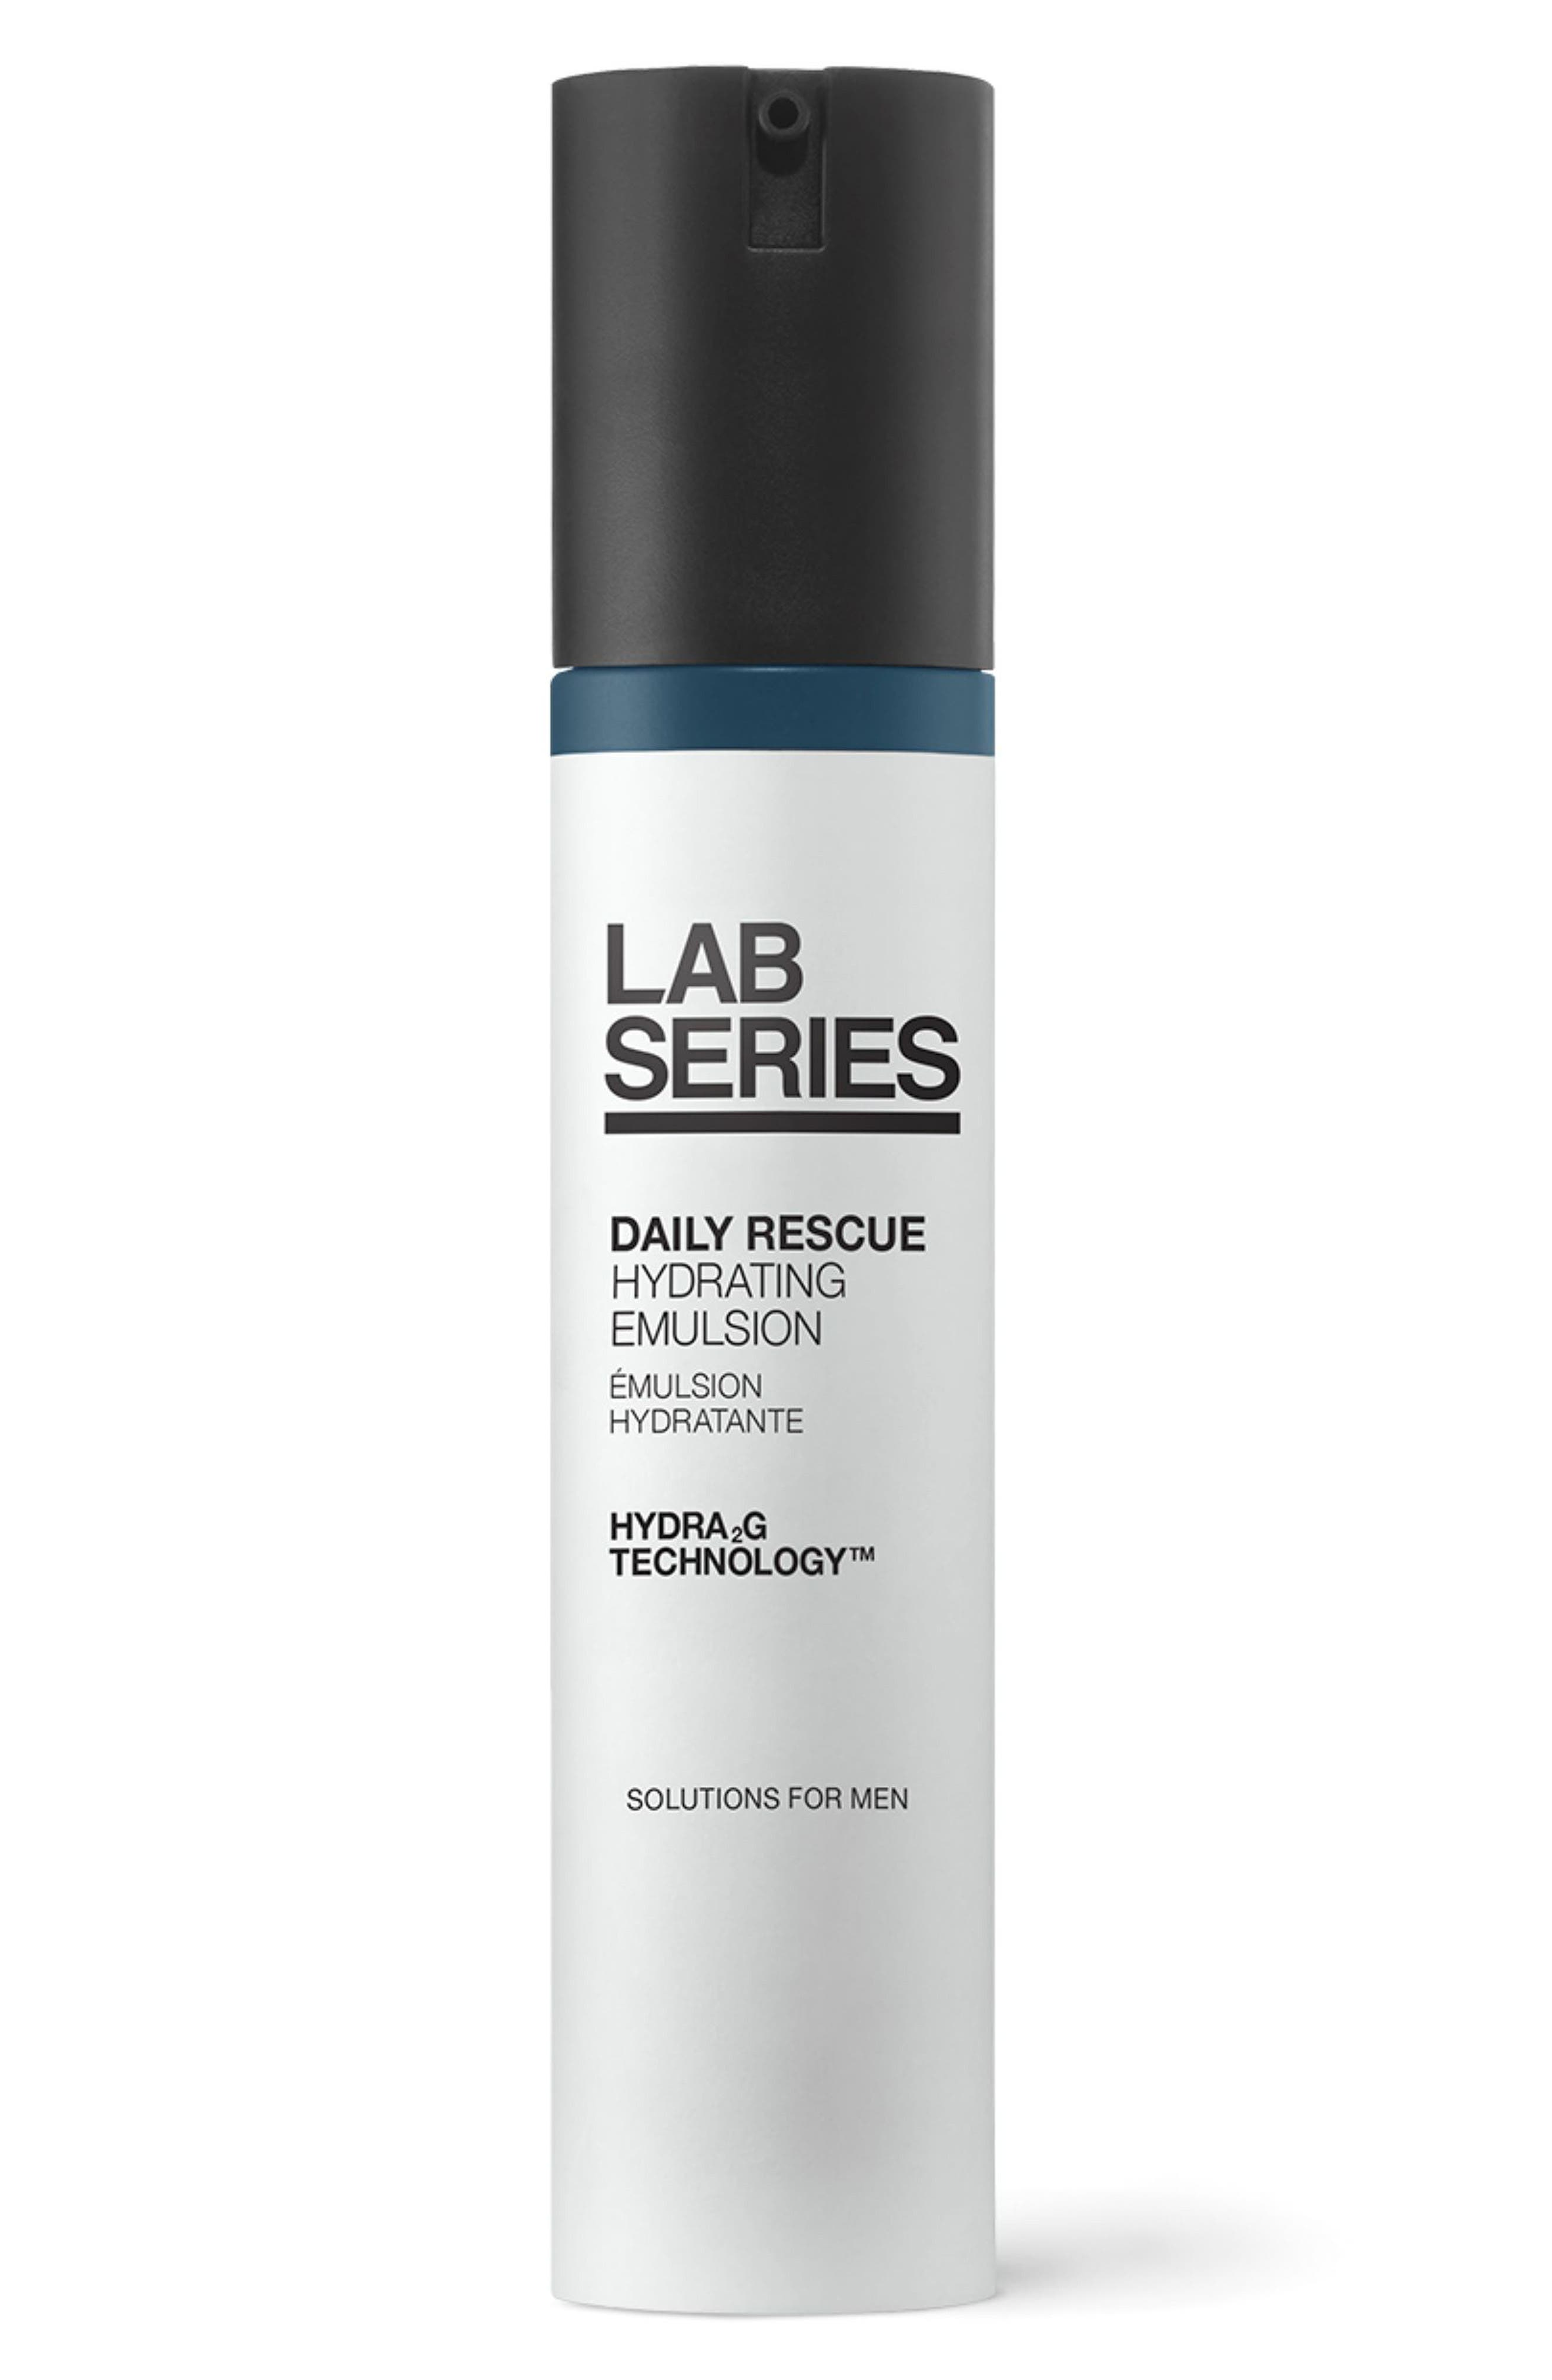 Daily Rescue Hydrating Emulsion